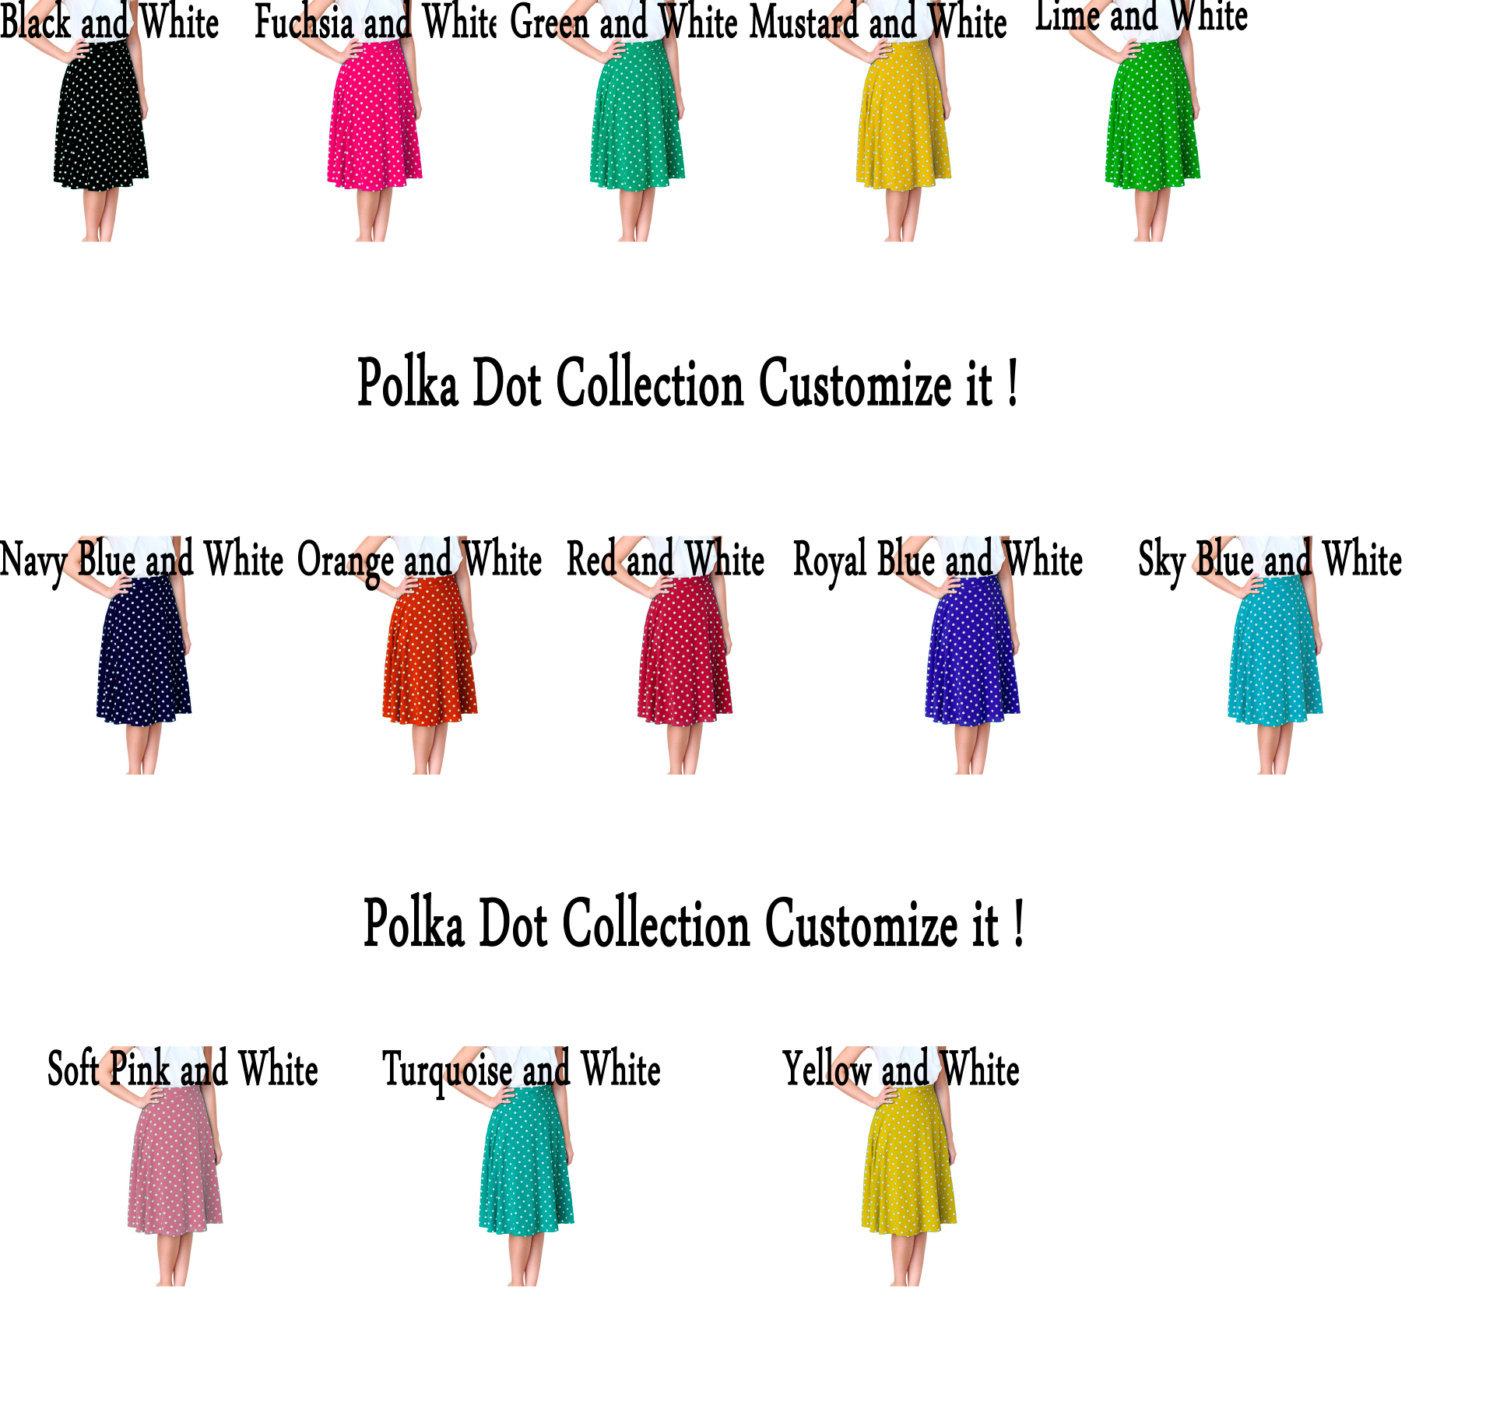 Women's Solid Color Flared Maxi A Line Below and Above Knee Polka Dots Skirts for sale  USA